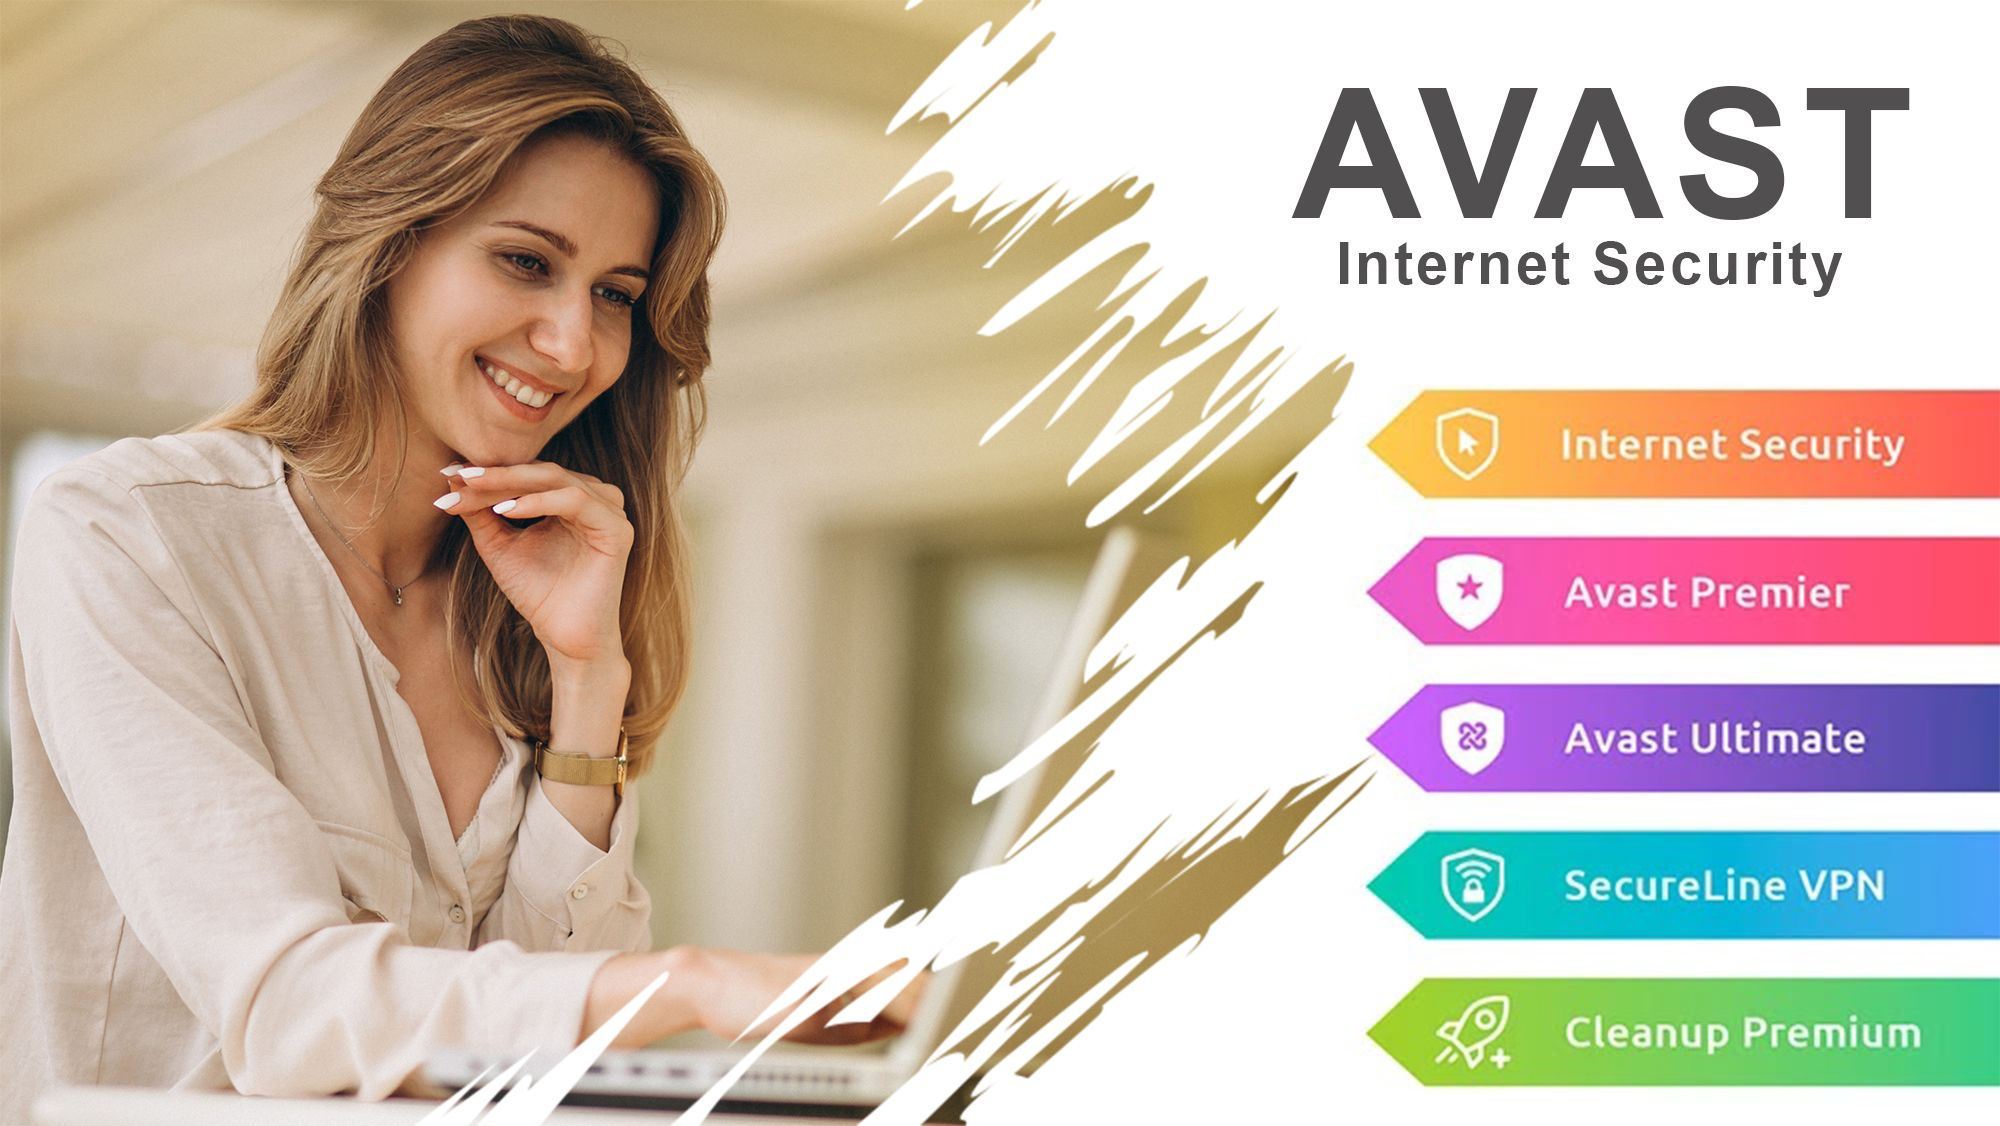 Avast Account Is A Portal Designed To Help You Manage All Your